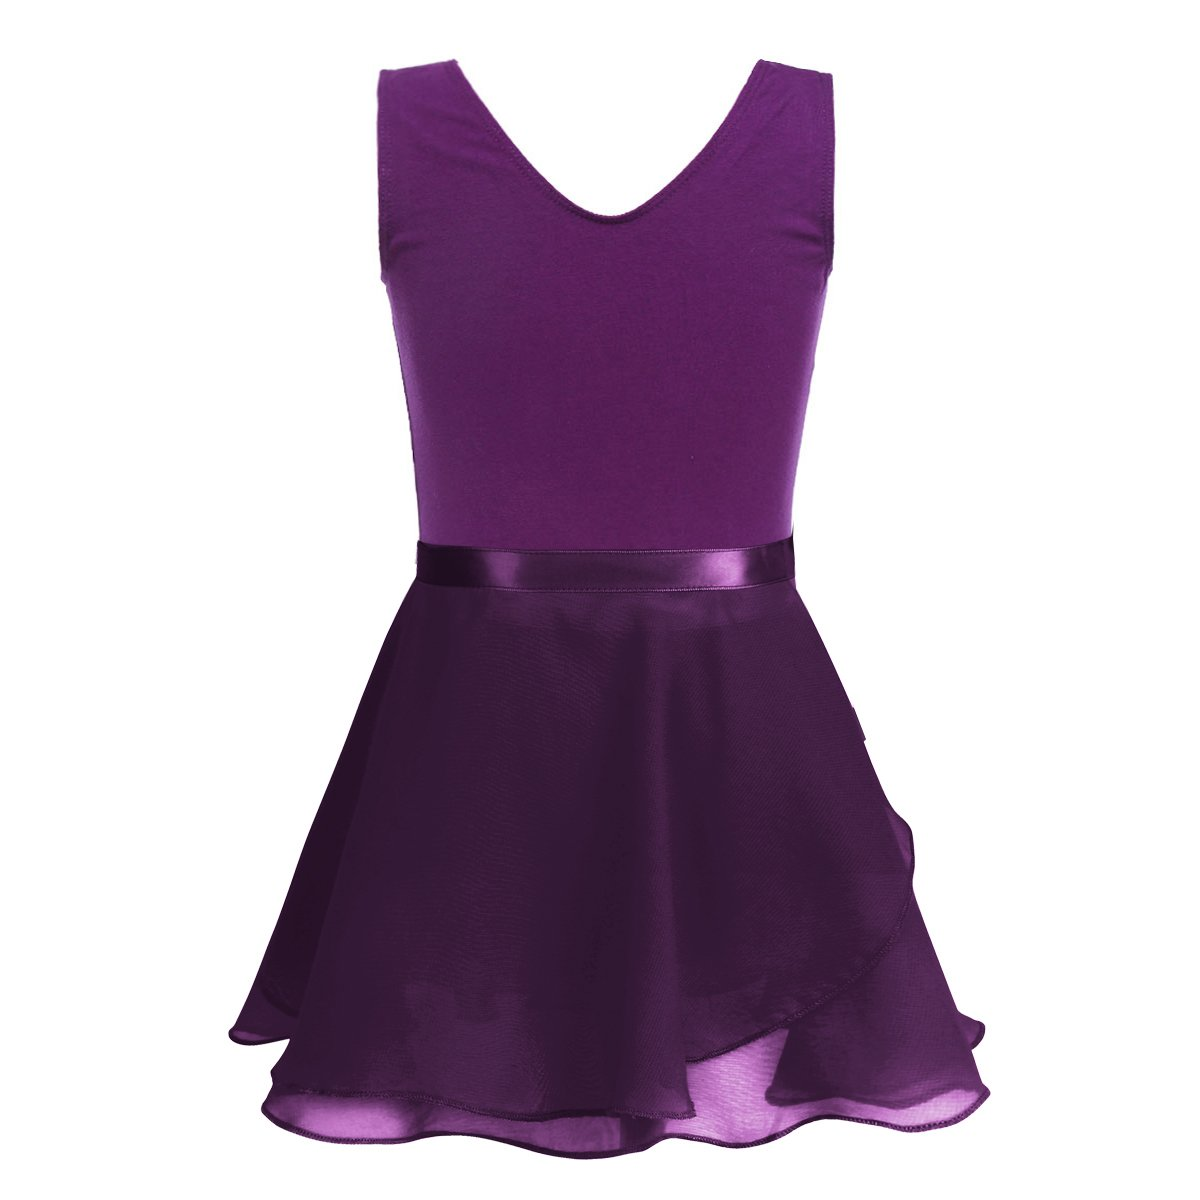 【激安セール】 Freebily APPAREL ベビーガールズ ガールズ B07HGXRYVL Dark Purple ( Sleeveless) ガールズ Sleeveless) Purple 12--14, ササクラスポーツ:e35434b6 --- a0267596.xsph.ru